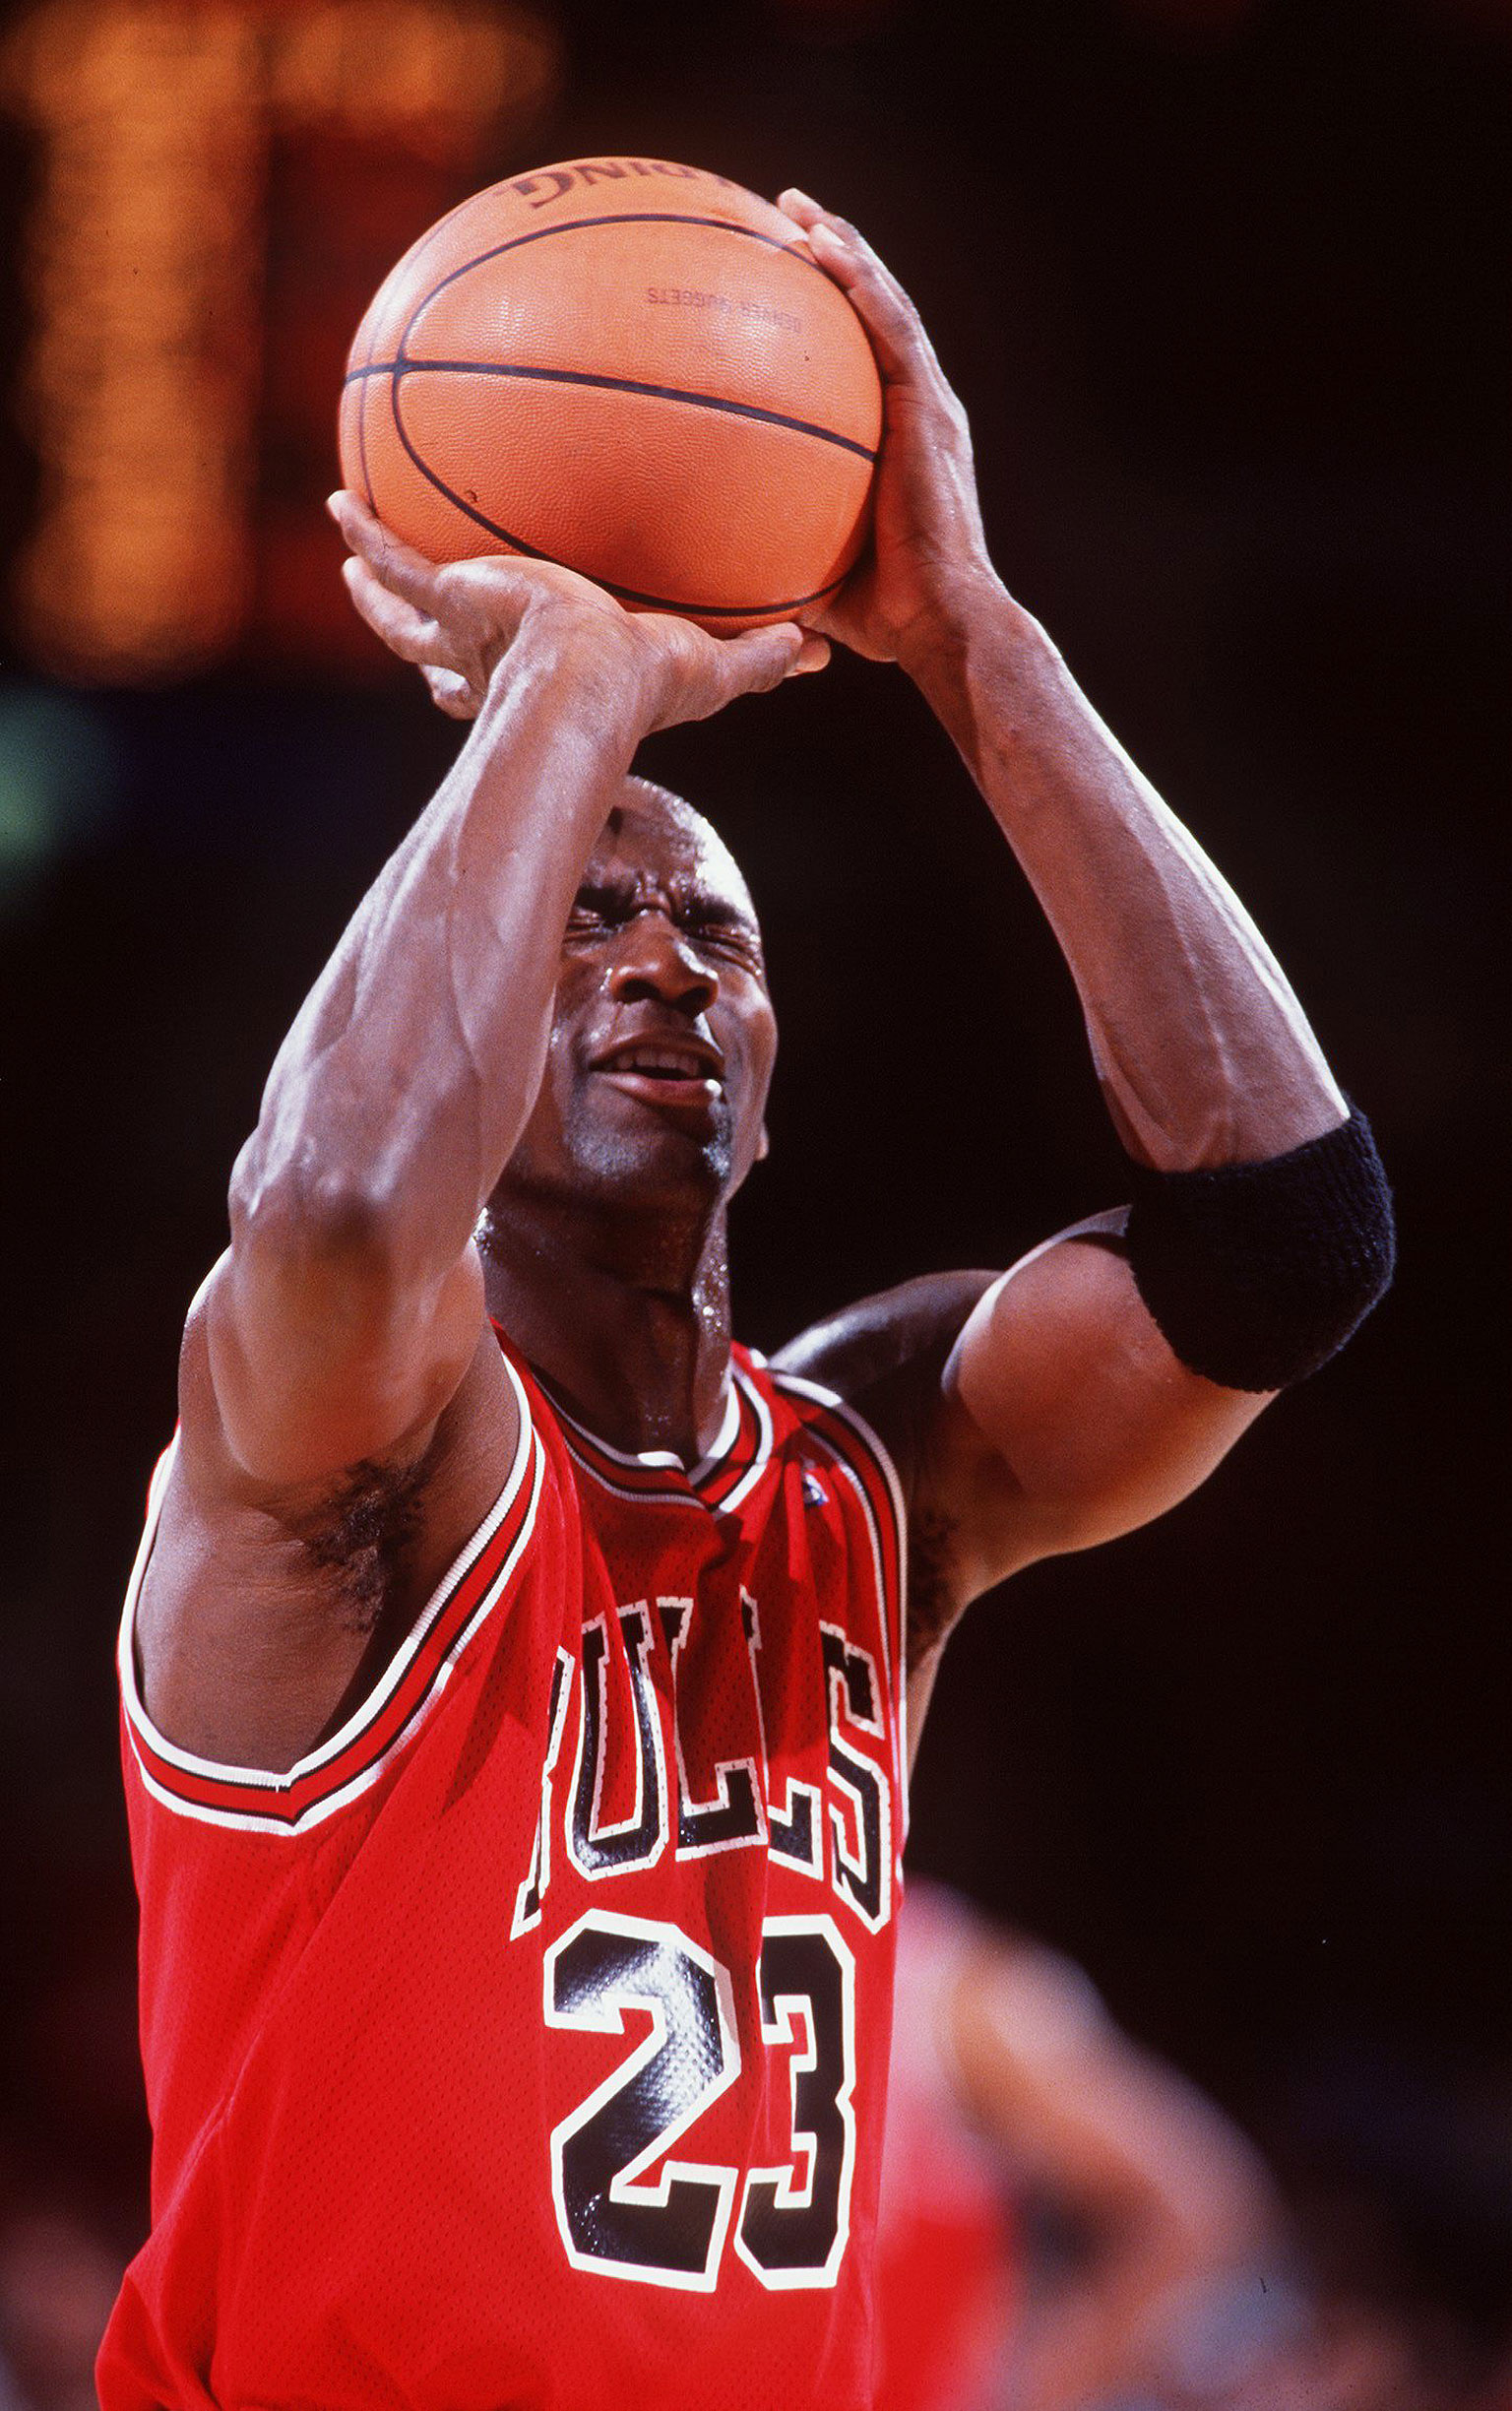 MBLP in pillole - Michael Jordan #LegaNerd